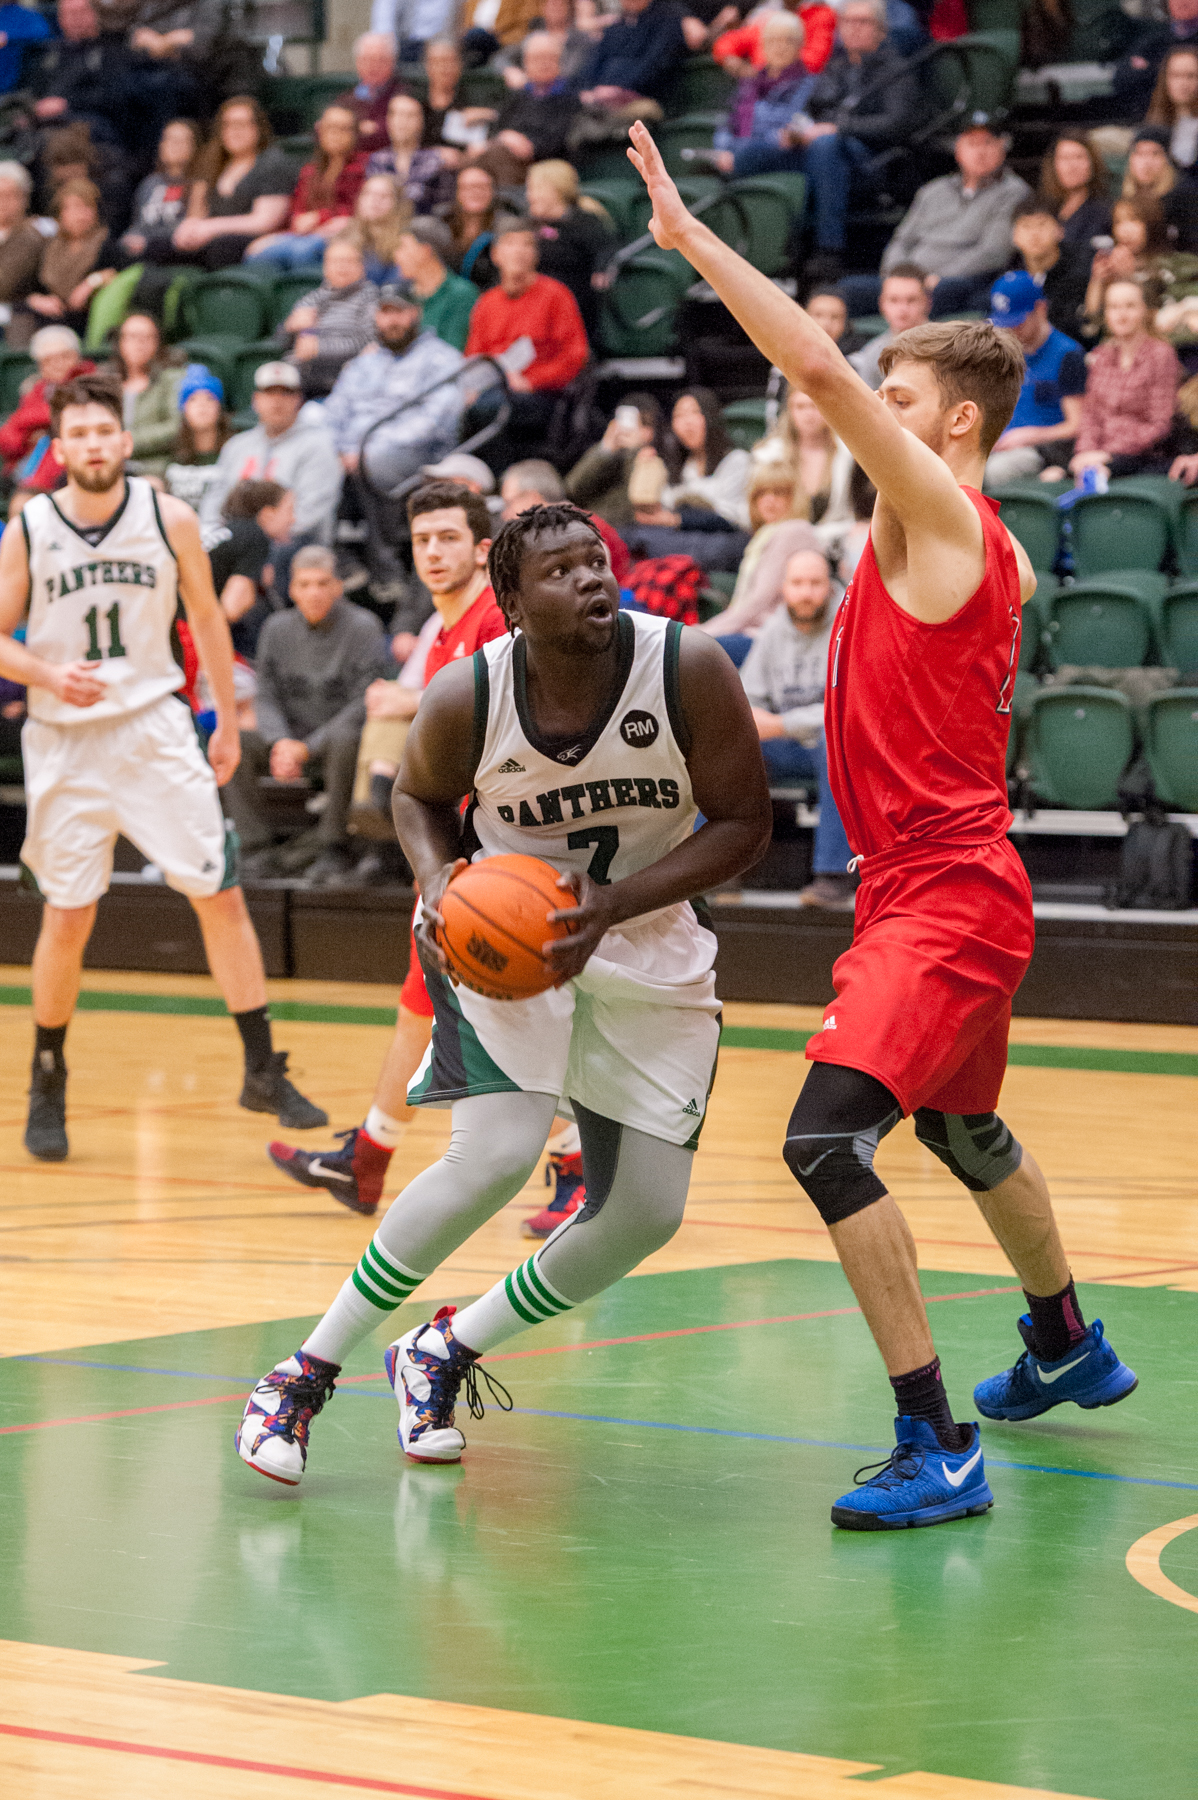 Panthers falter in 84-68 loss to Acadia